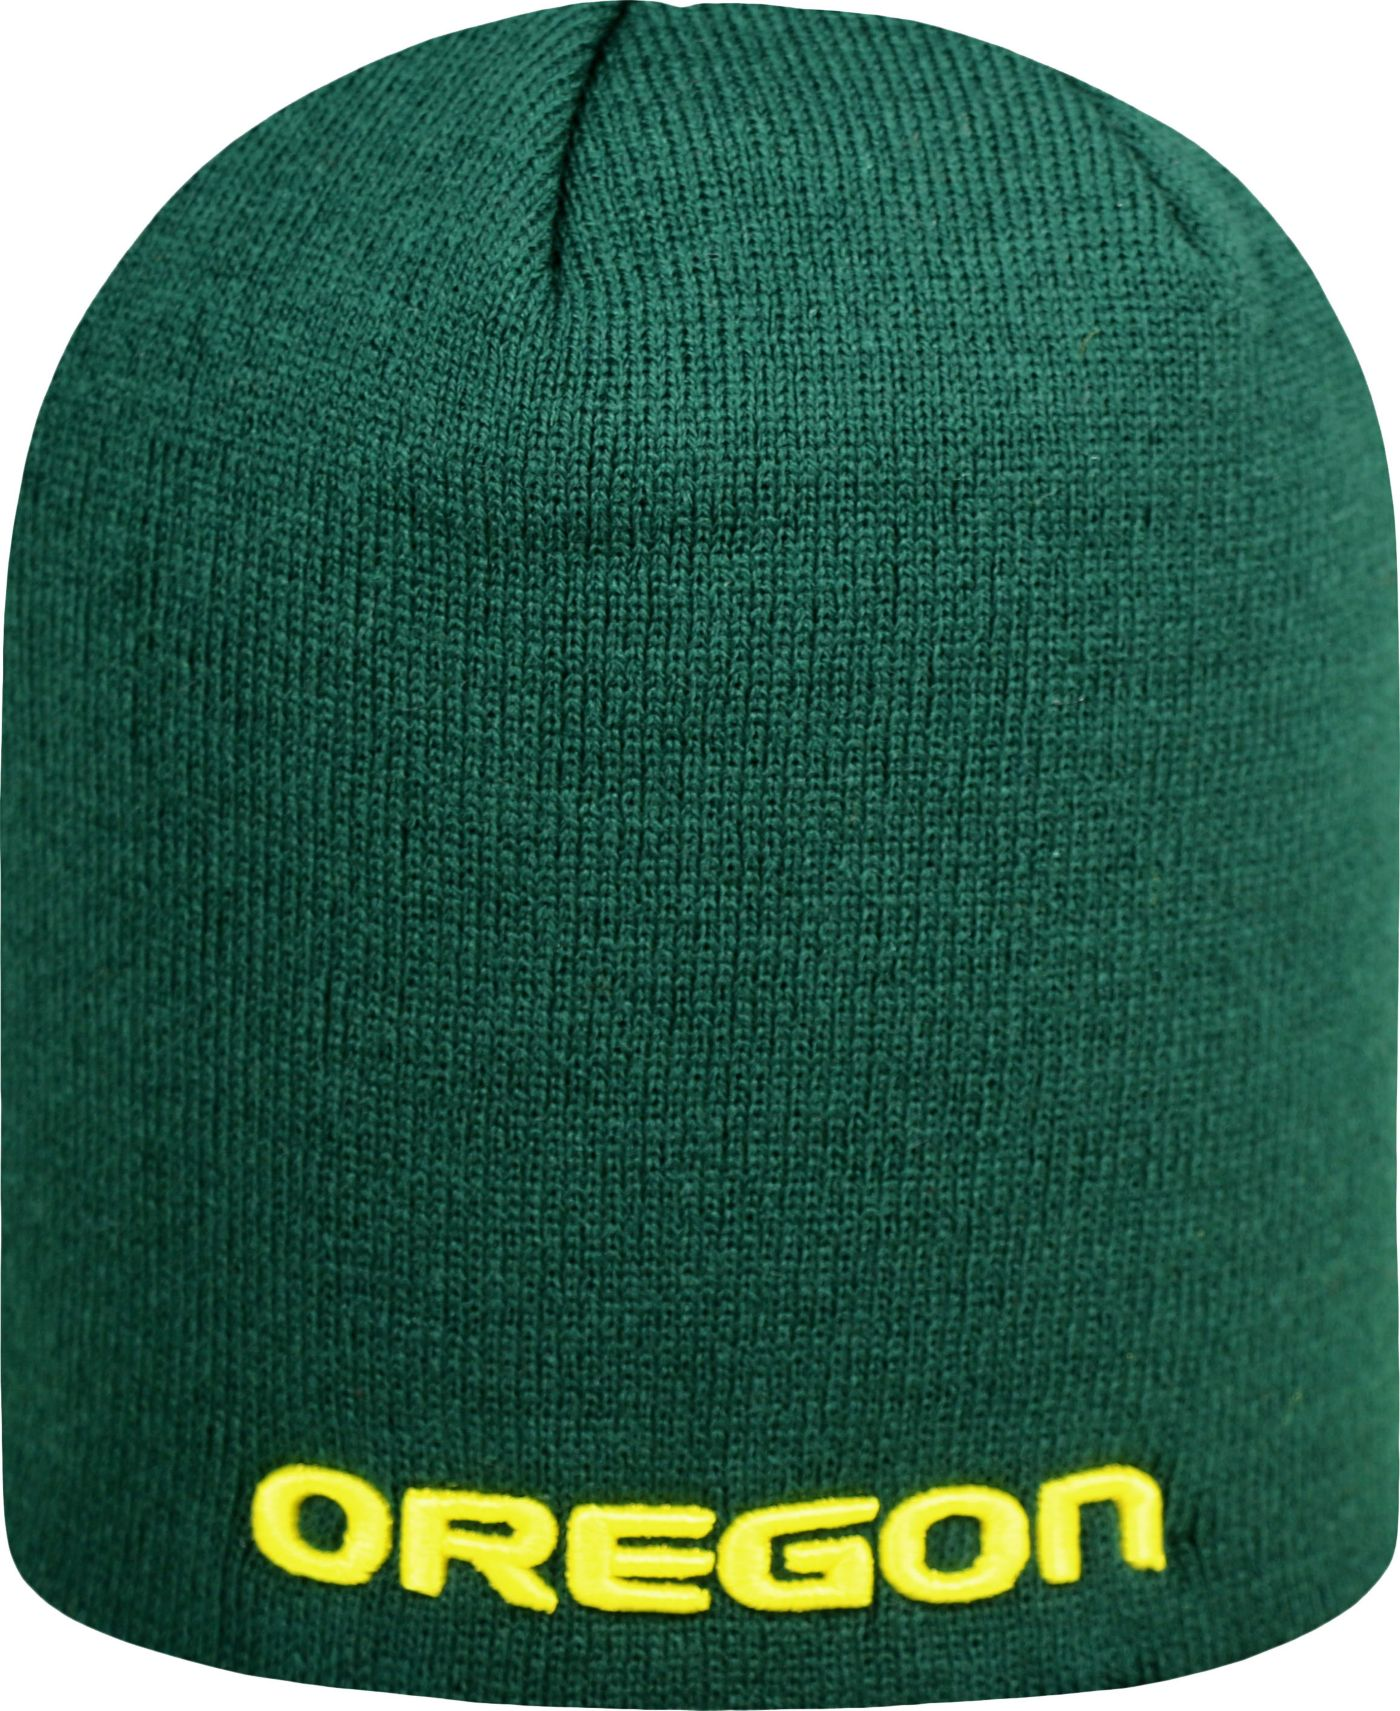 Top of the World Men's Oregon Ducks Green TOW Classic Knit Beanie